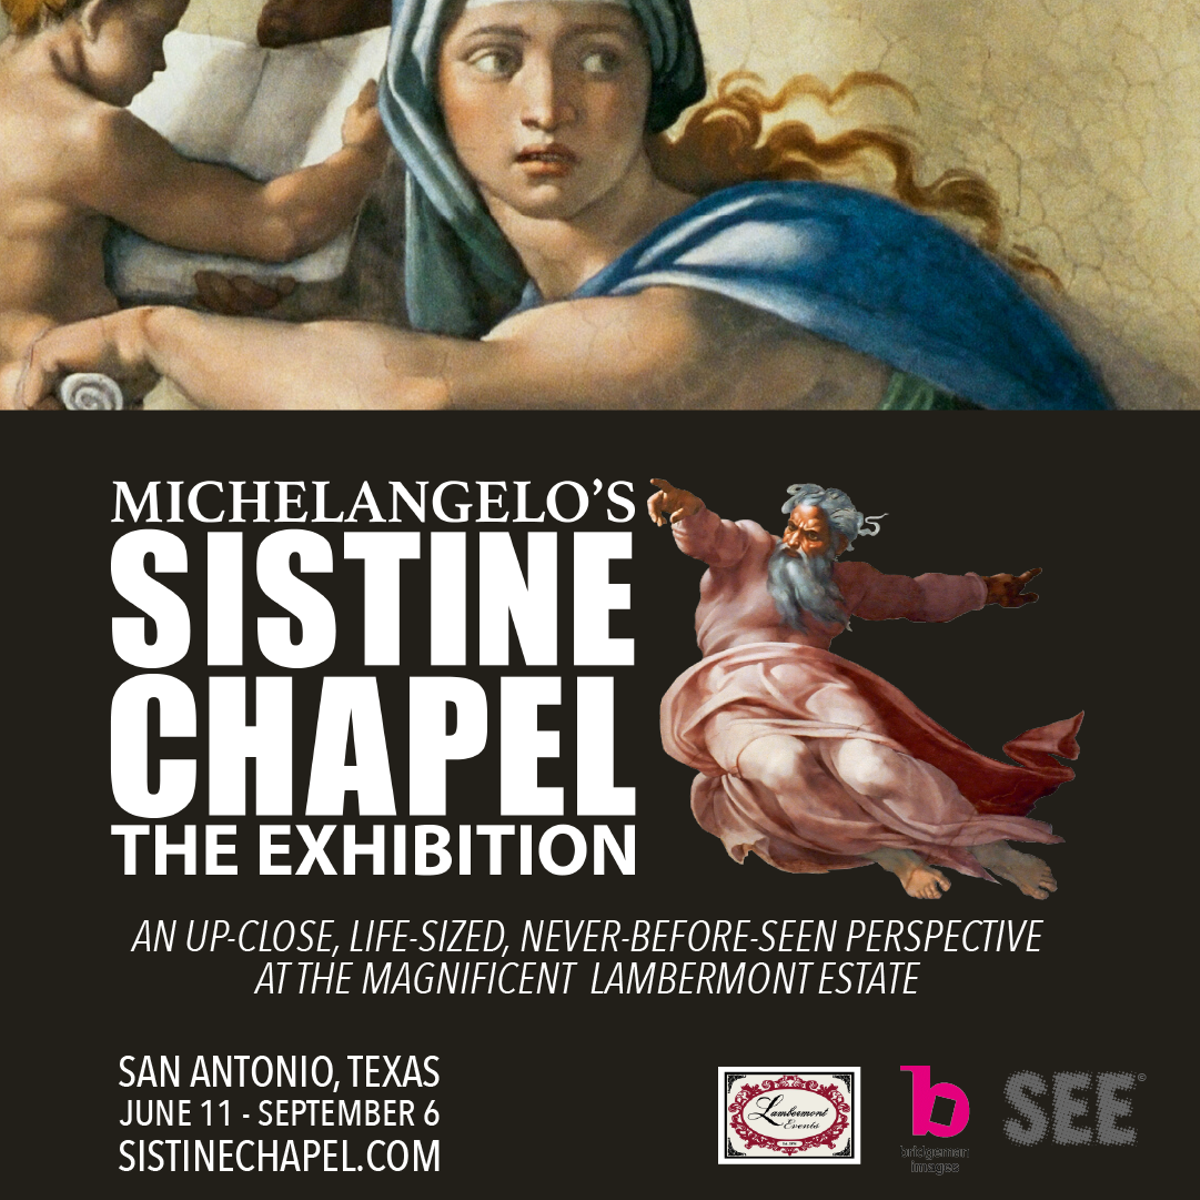 sistine_chapel_posters_revised_new-05.png